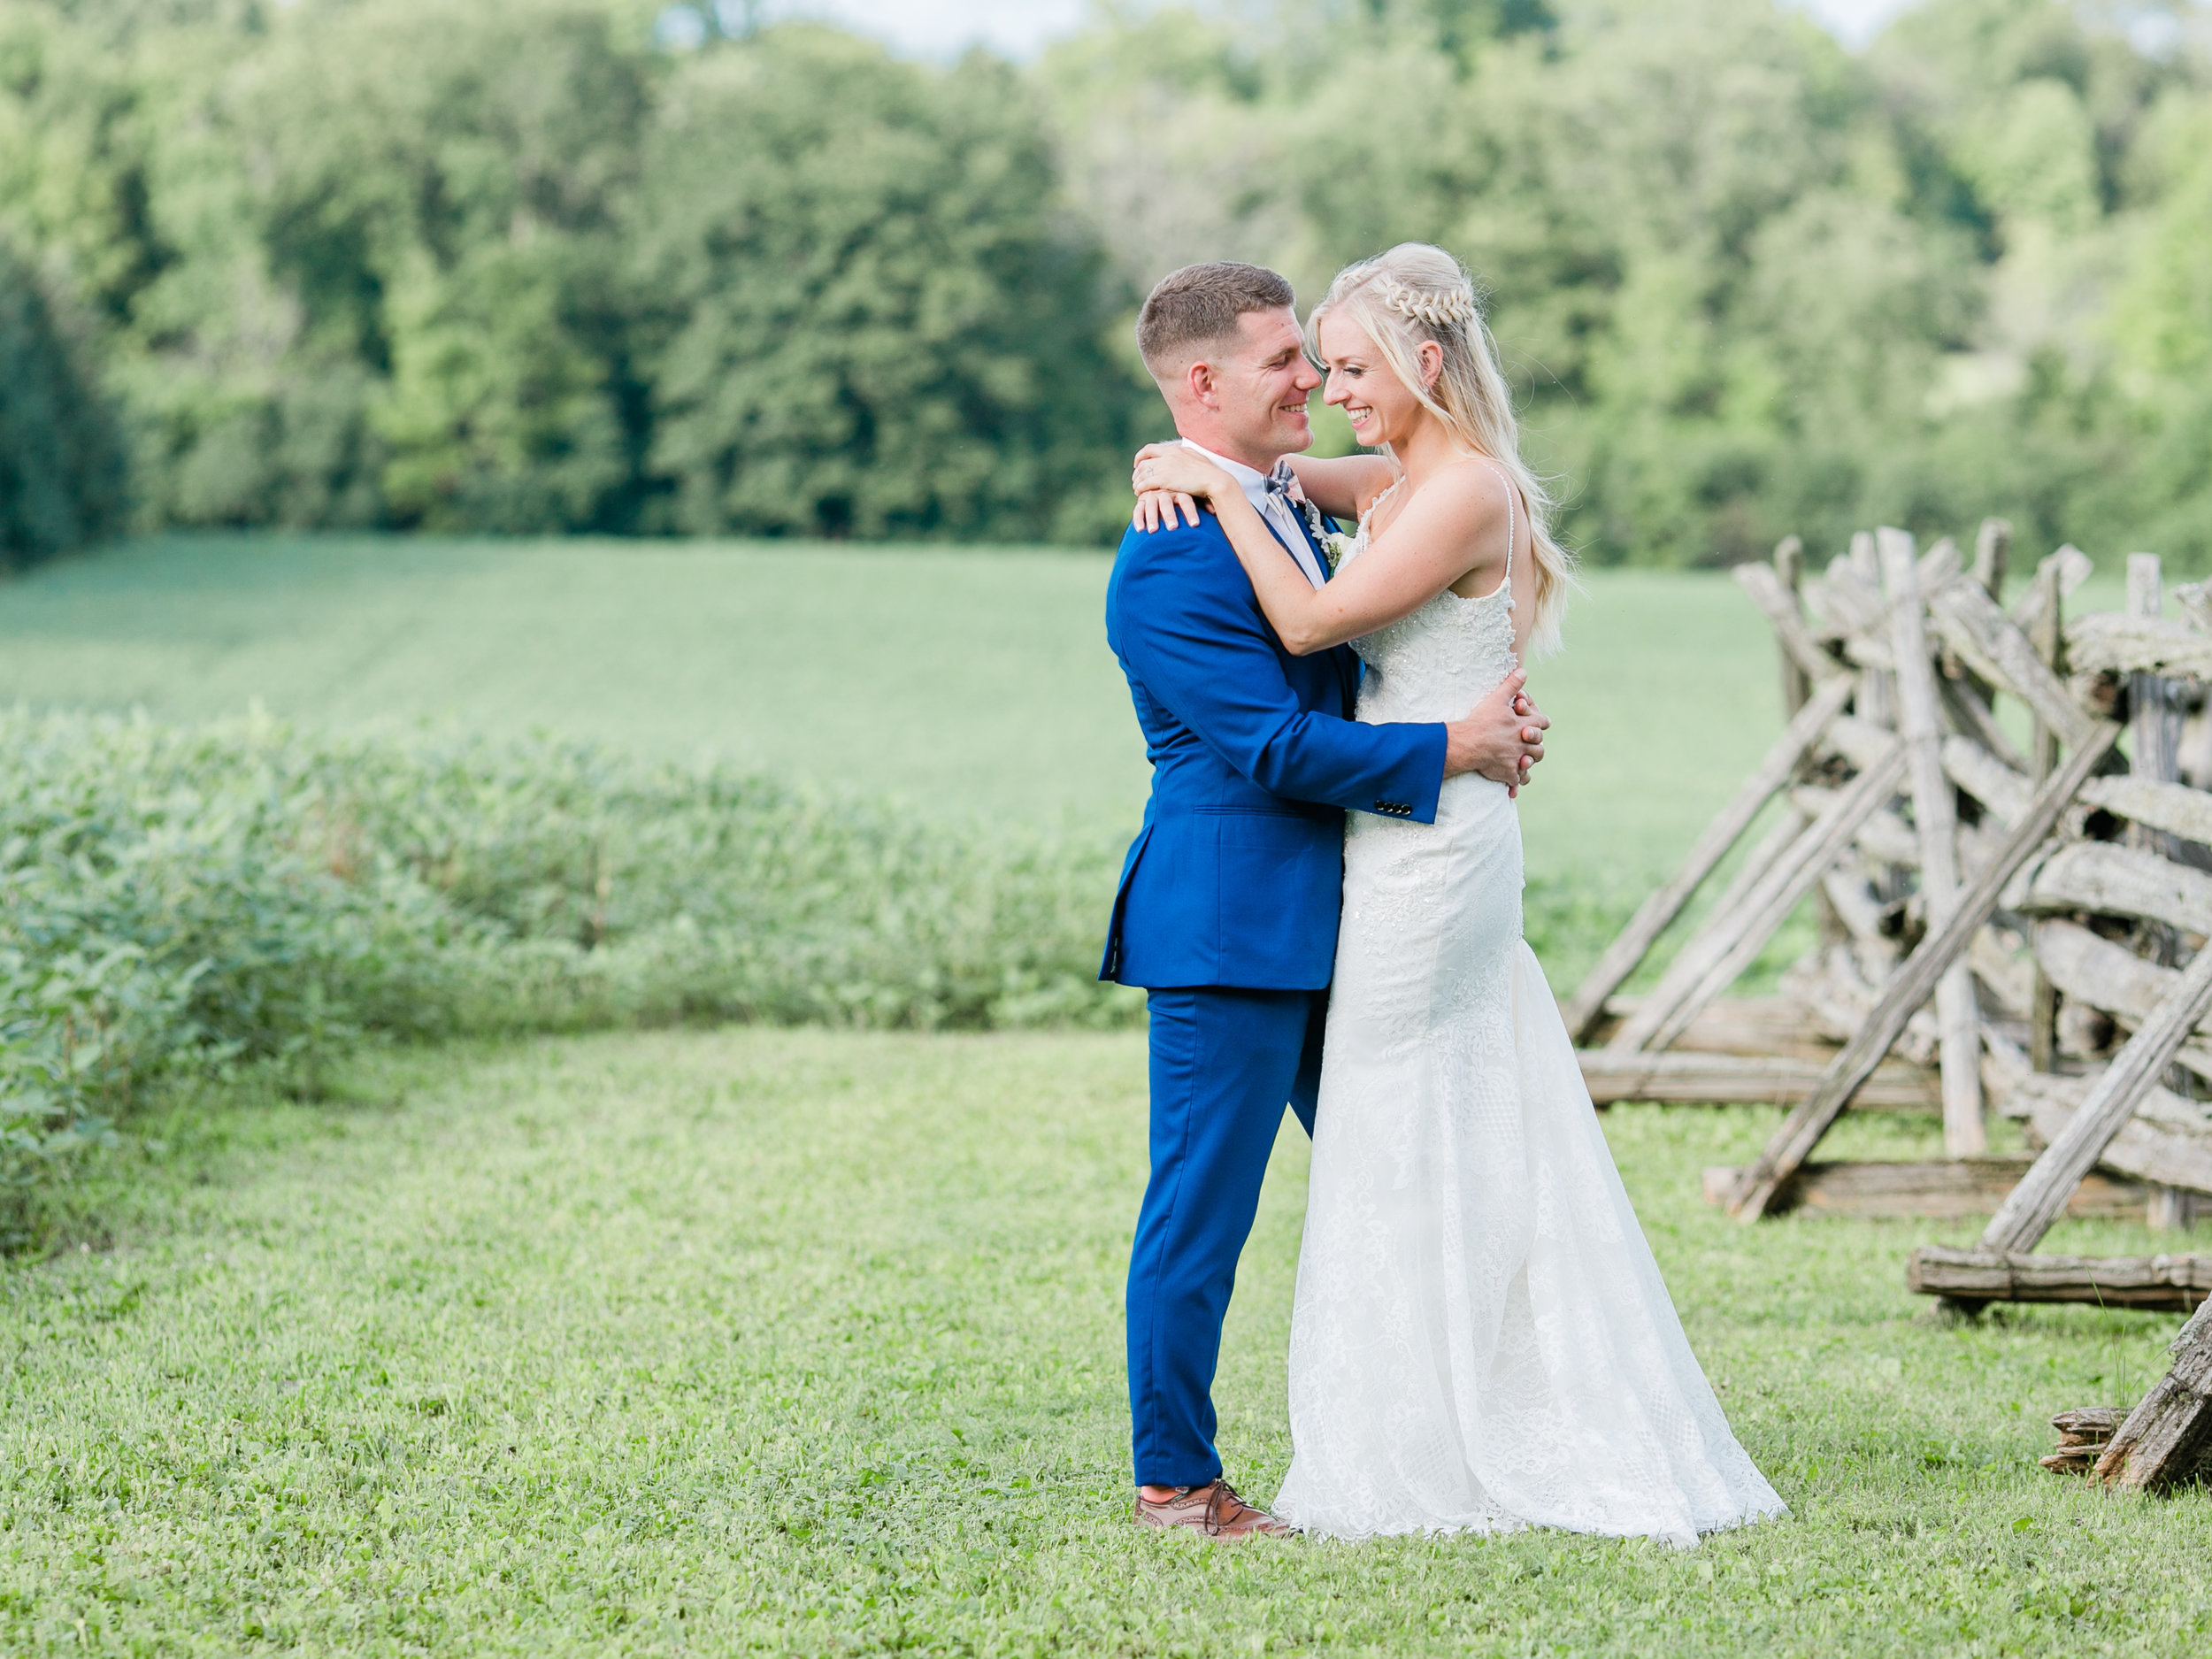 RobynMikeWedding_Evermore__StephanieMasonPhotography-596.jpg